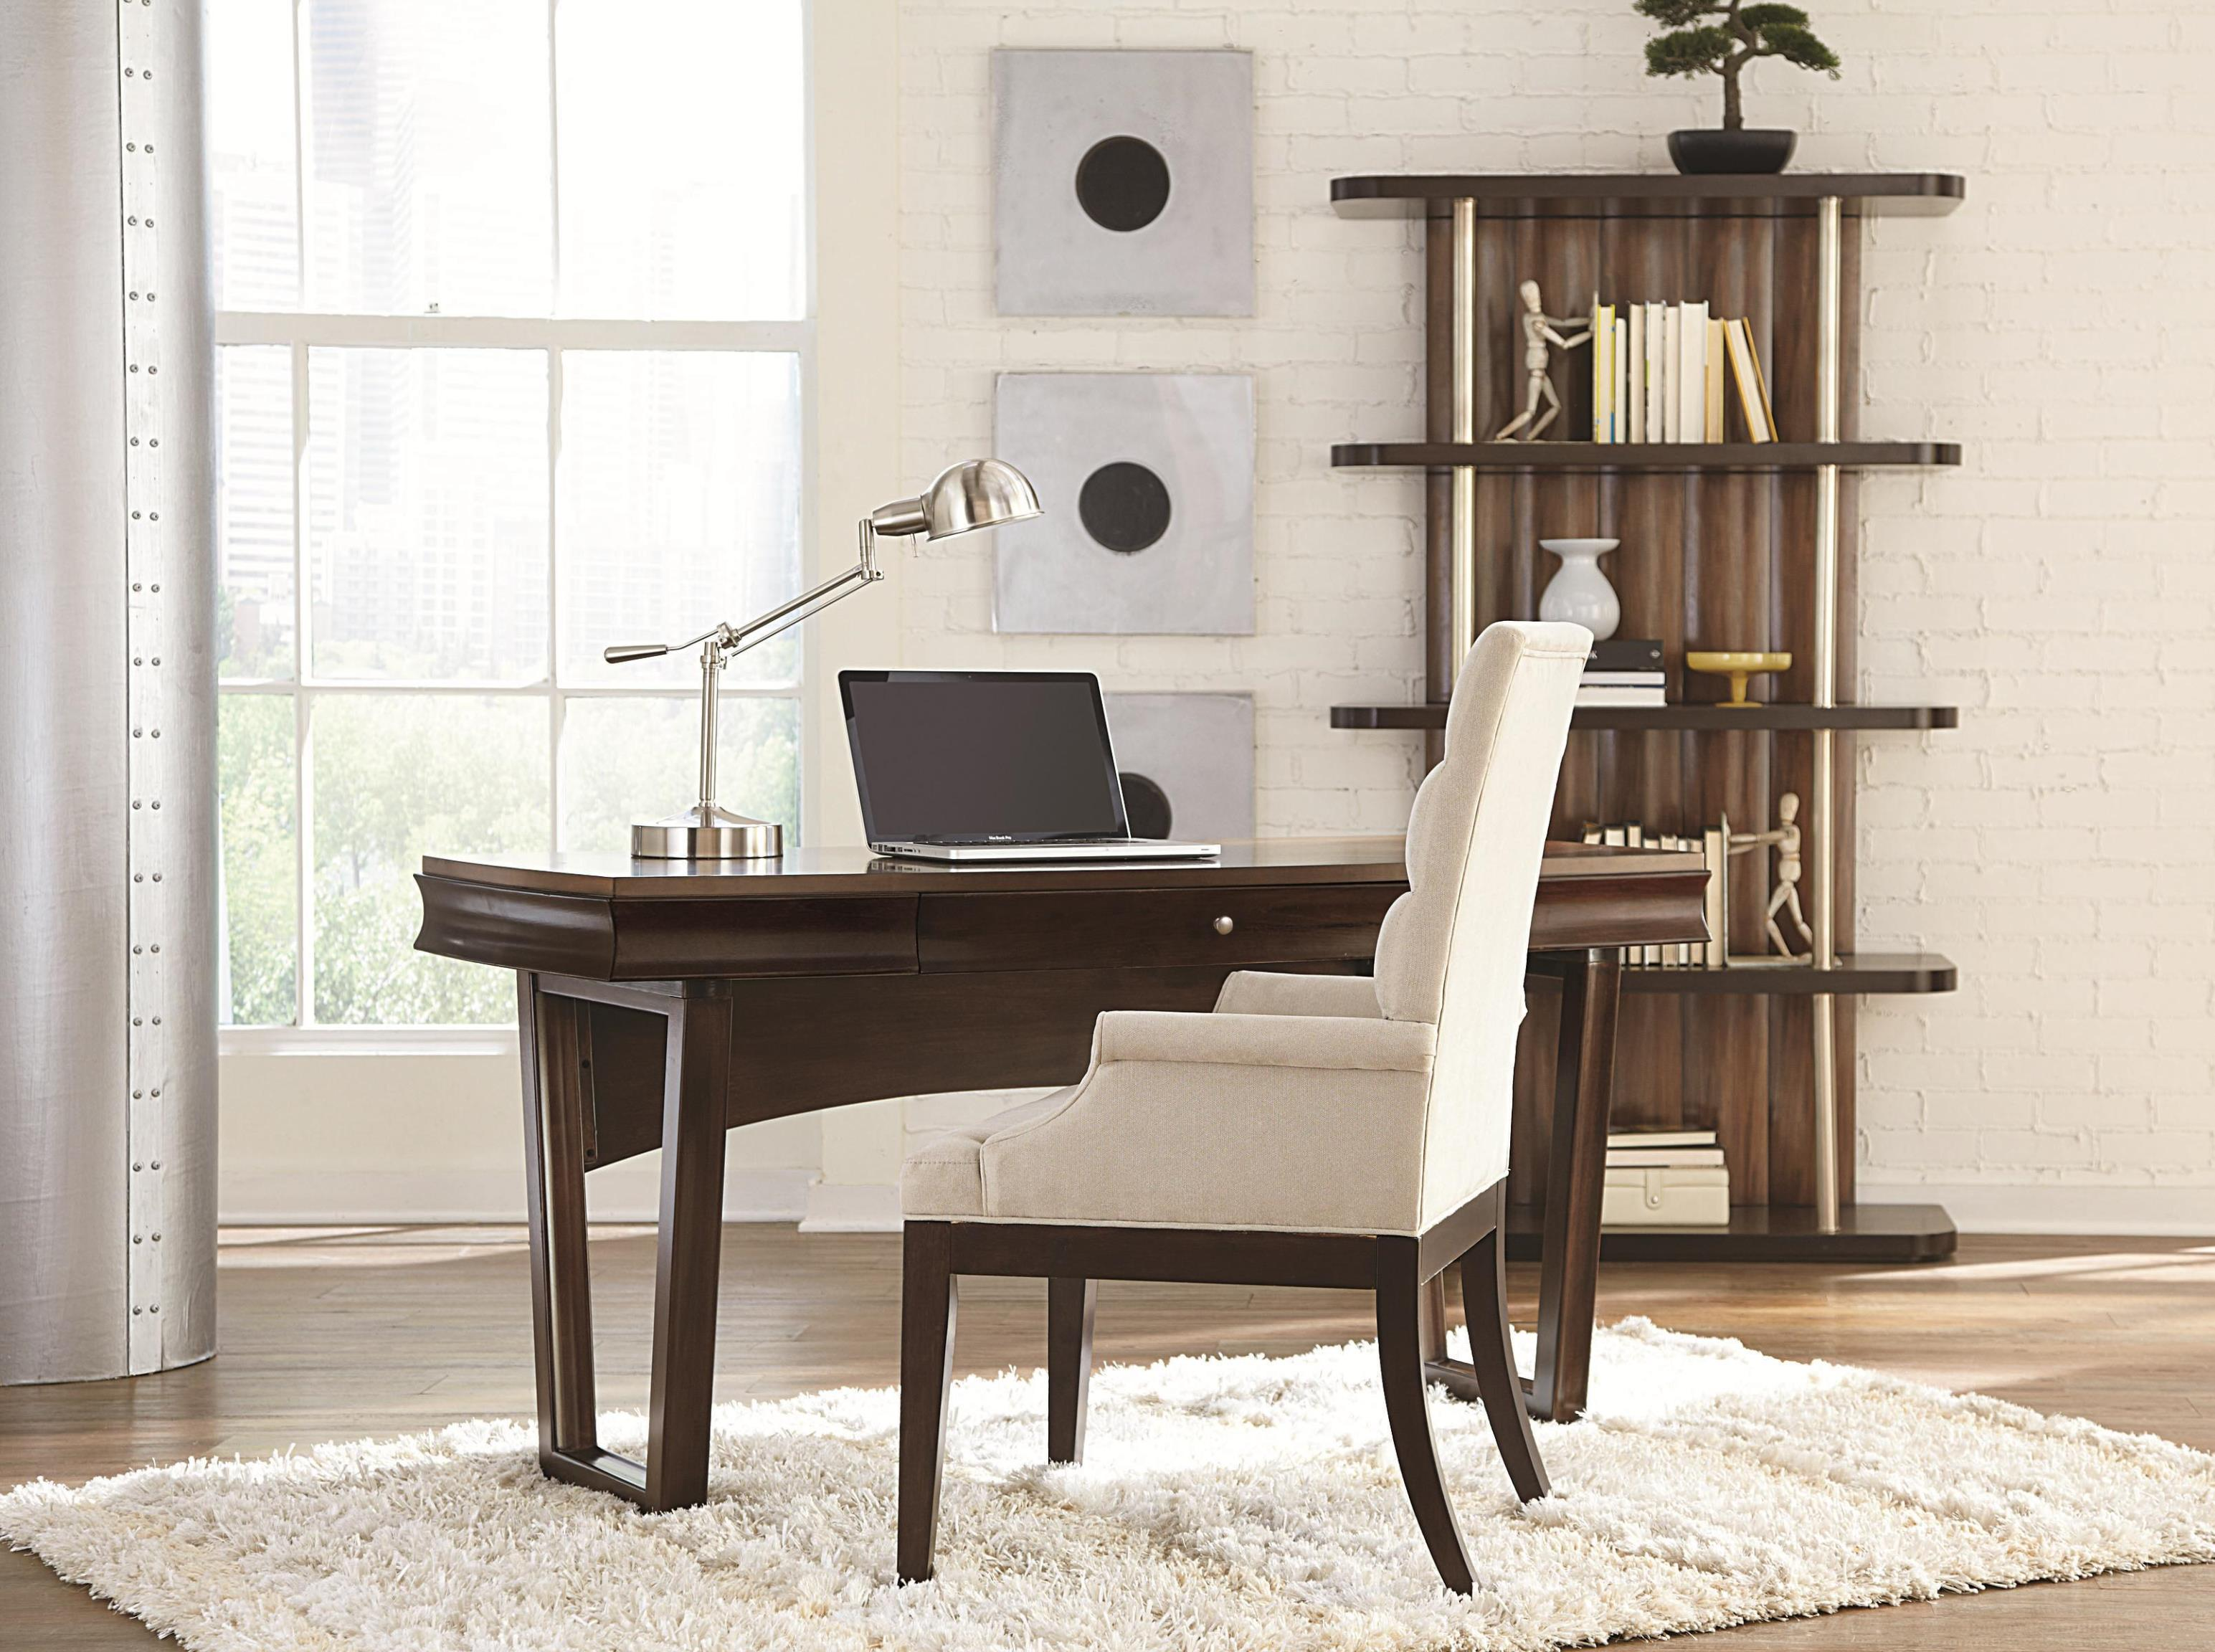 Image of: Modern Accent Chairs With Arms